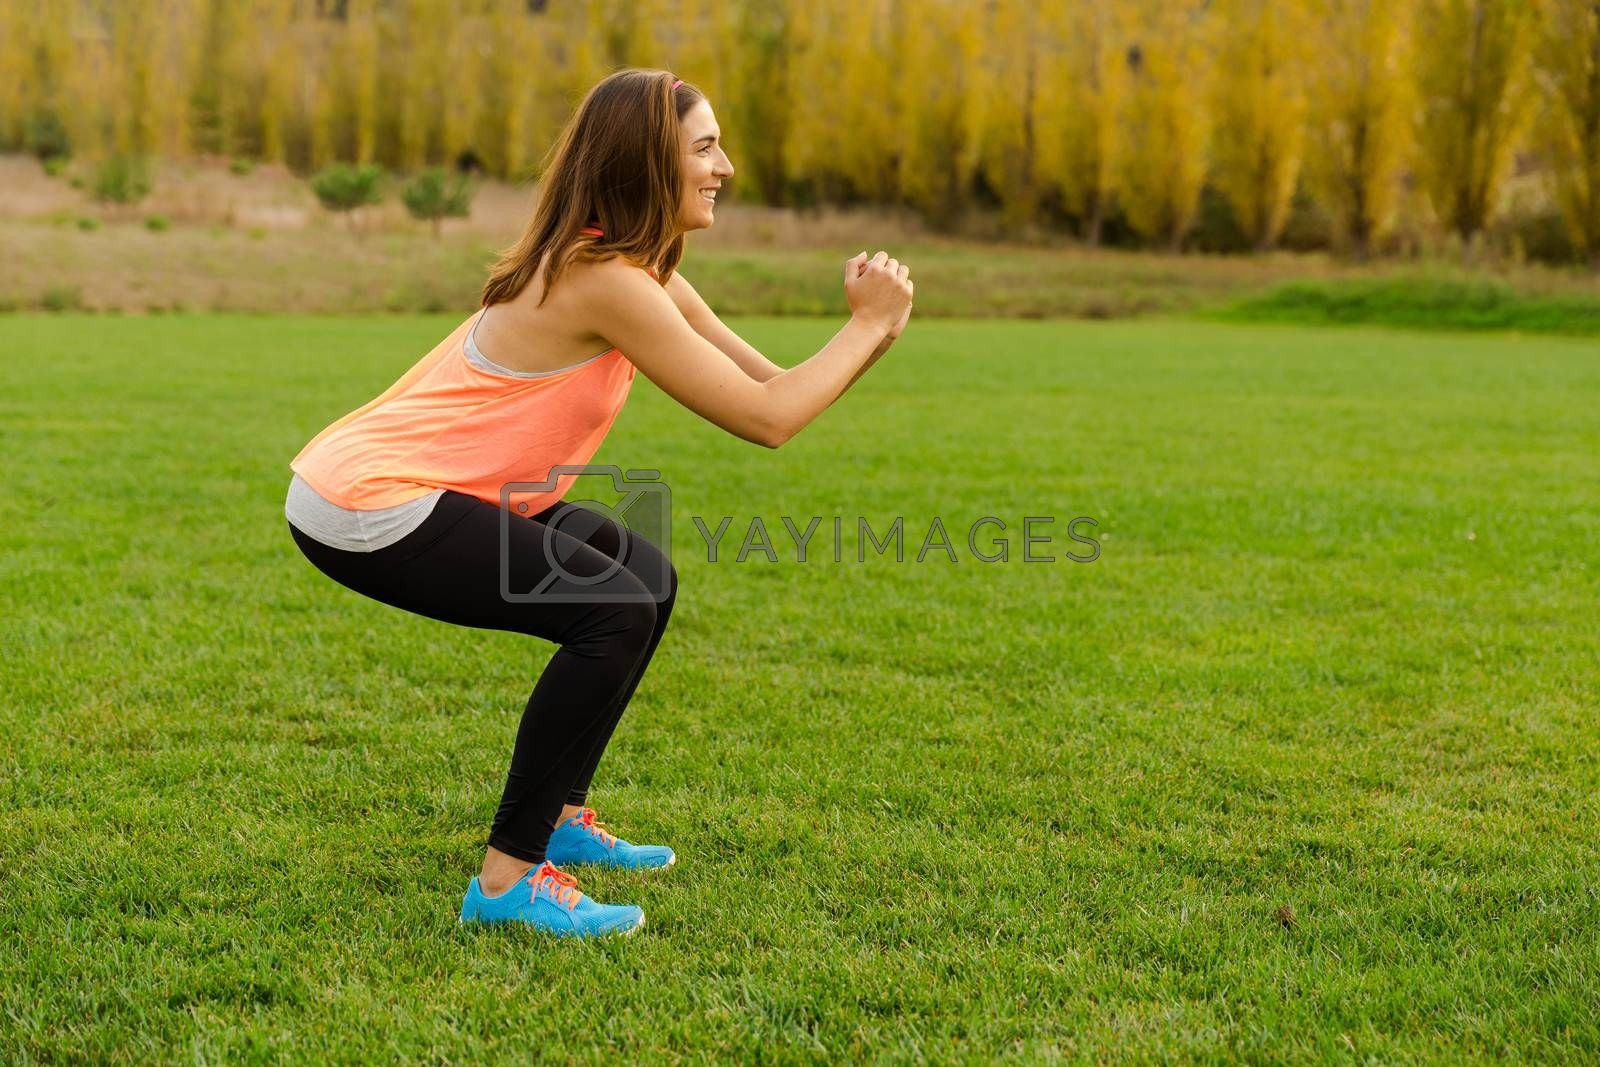 An attractive woman exercising outdoor on a soccer field